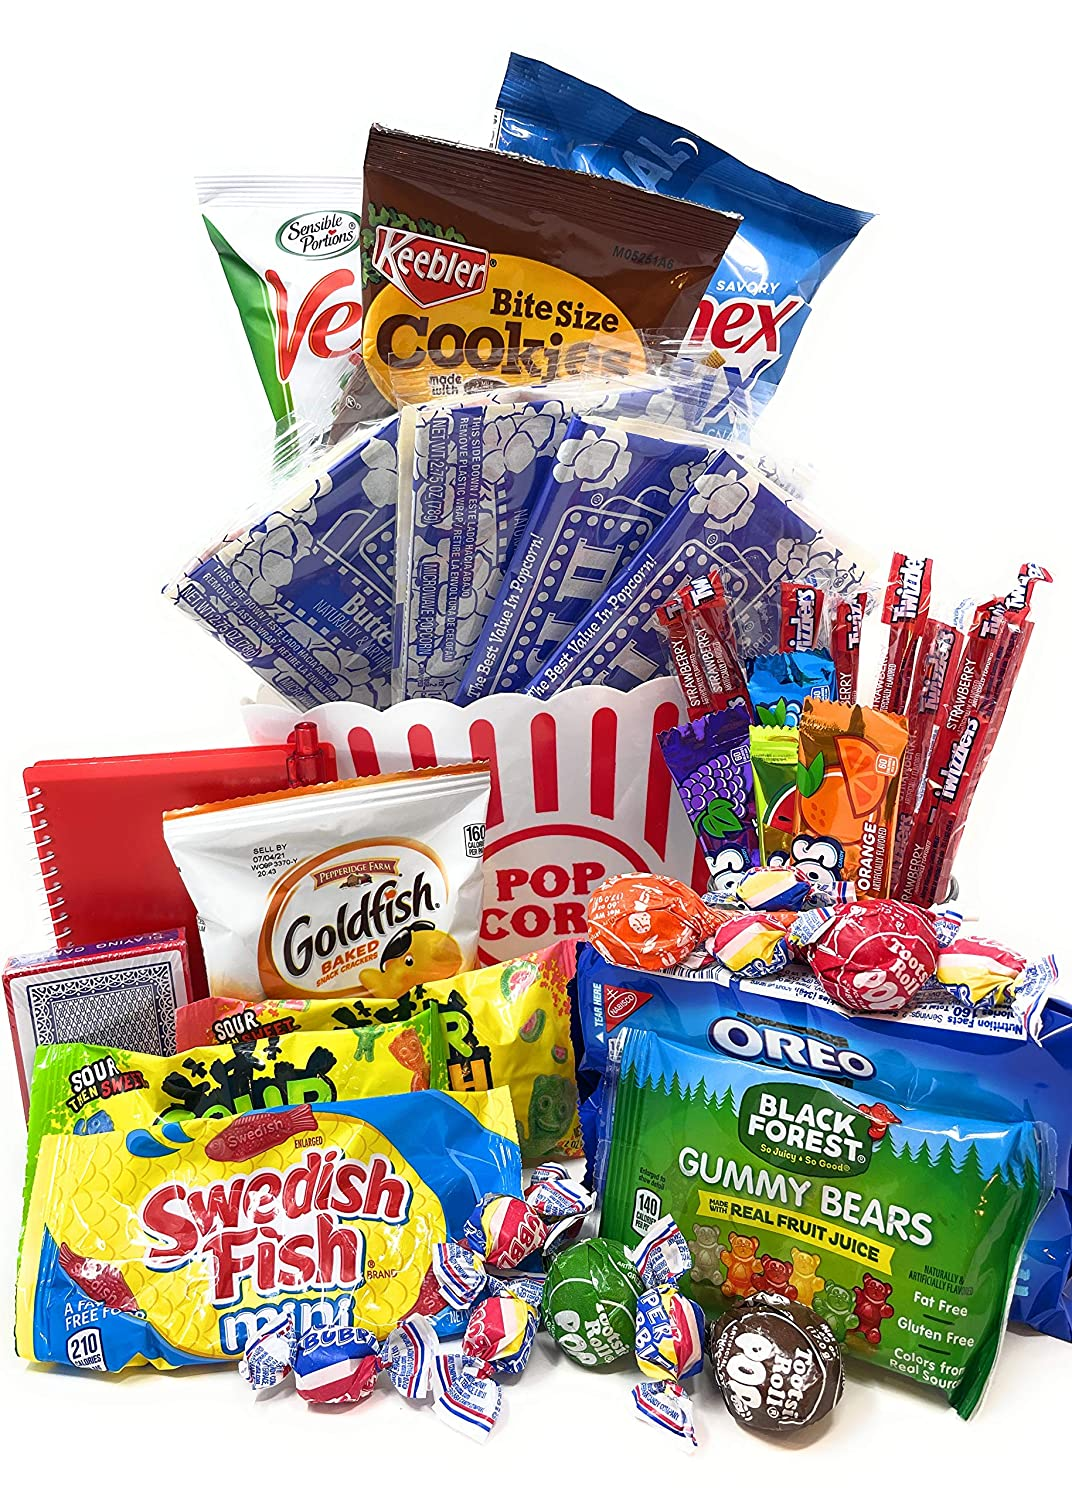 Movie and Game Night Gift Basket Care Package - Popcorn, Candy, Cookies Gift for Valentine's Day, Easter Basket, College Students - 40+ Piece Bundle